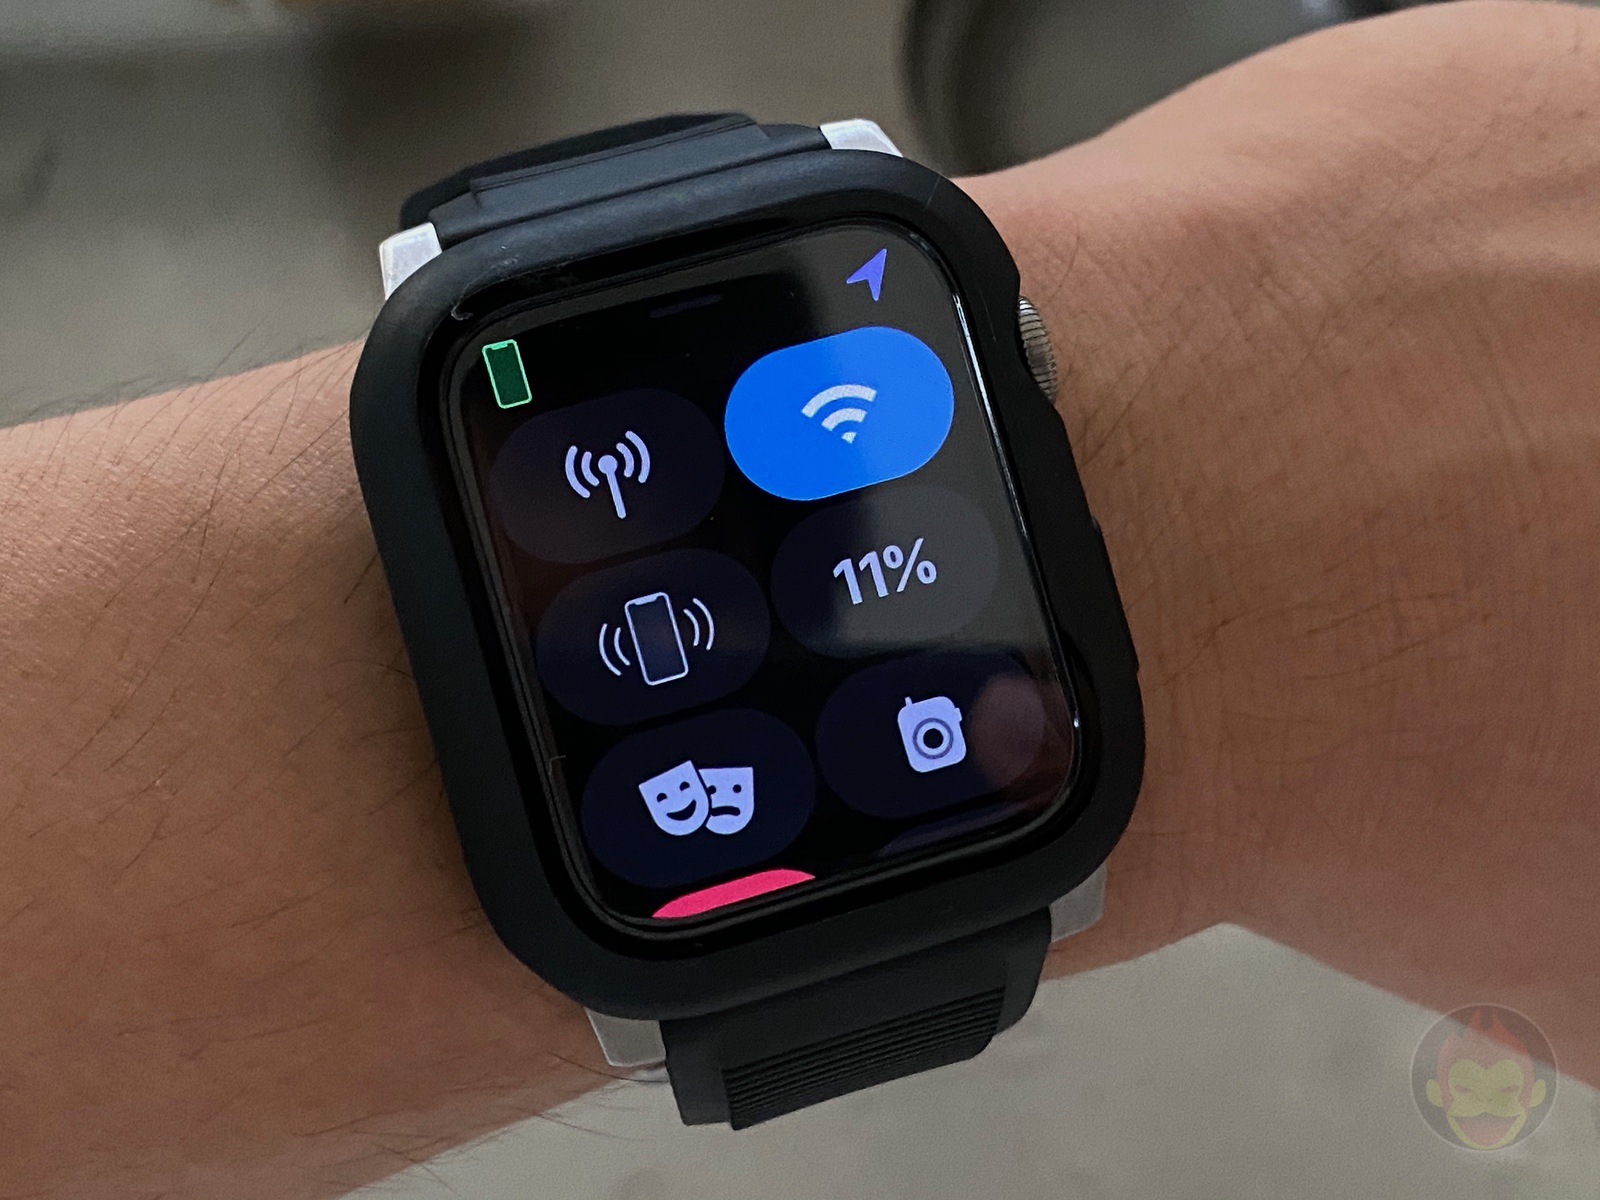 AppleWatchSeries6 With AODisplay ON 01